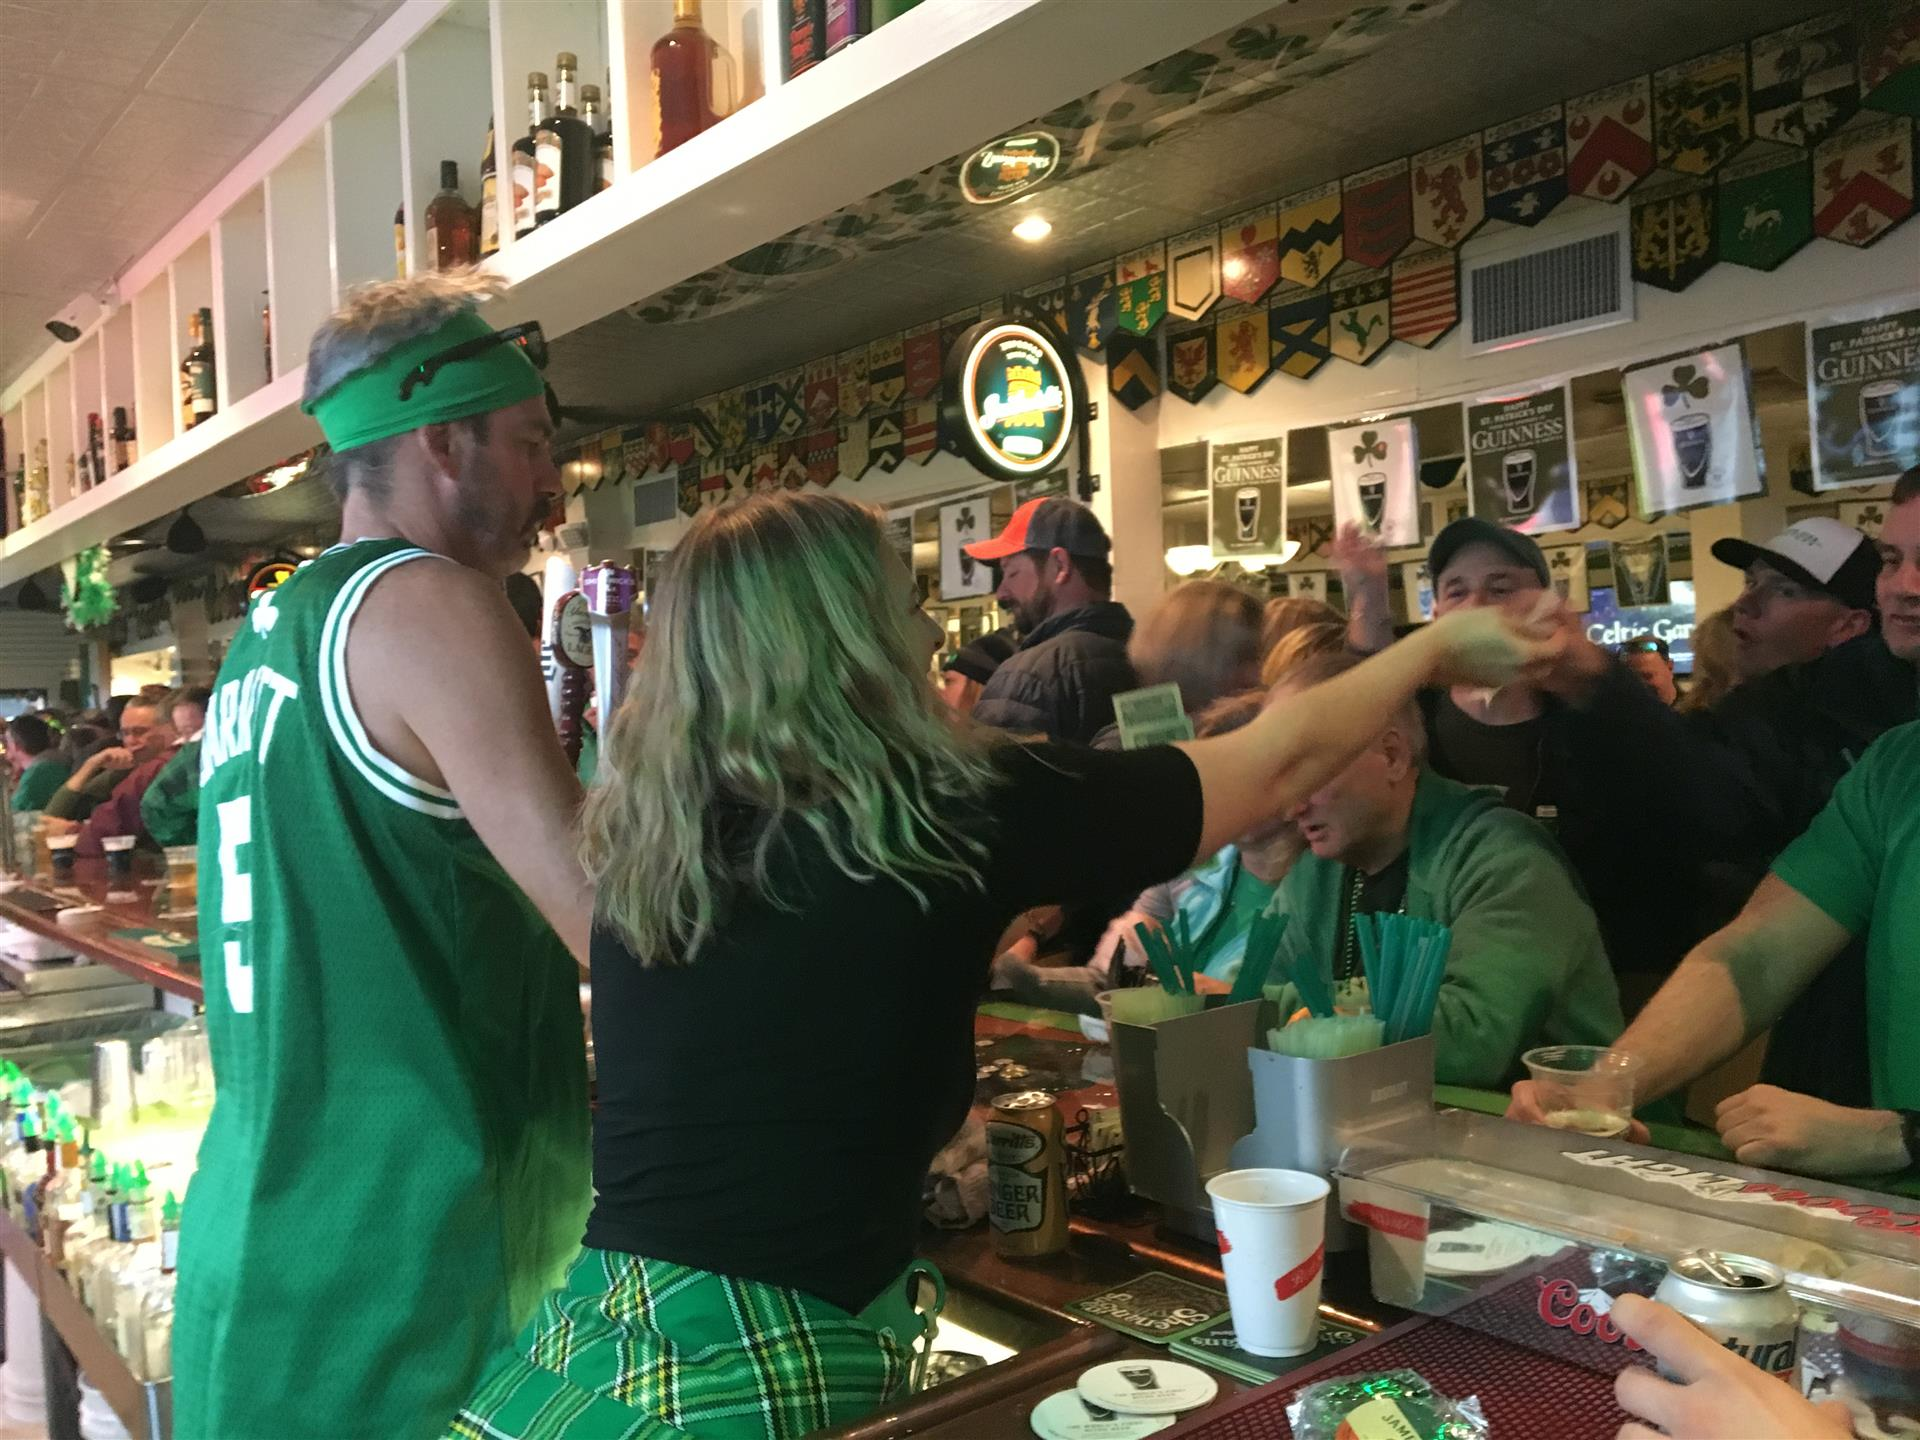 View from behind the crowded bar on St. Patrick's Day 2018. Two bartenders serving drinks.